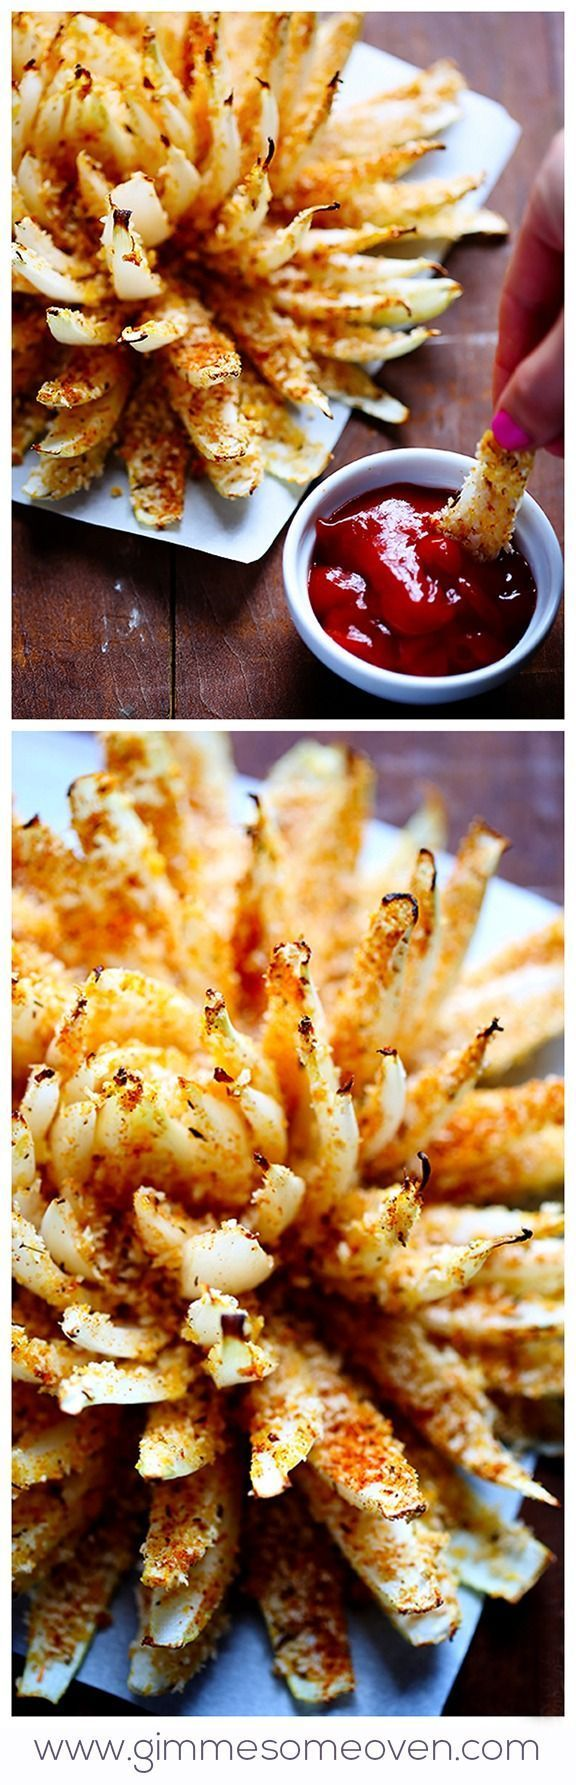 Marinated And Roasted Vidalia Onion Rings With Parmesan Recipe ...